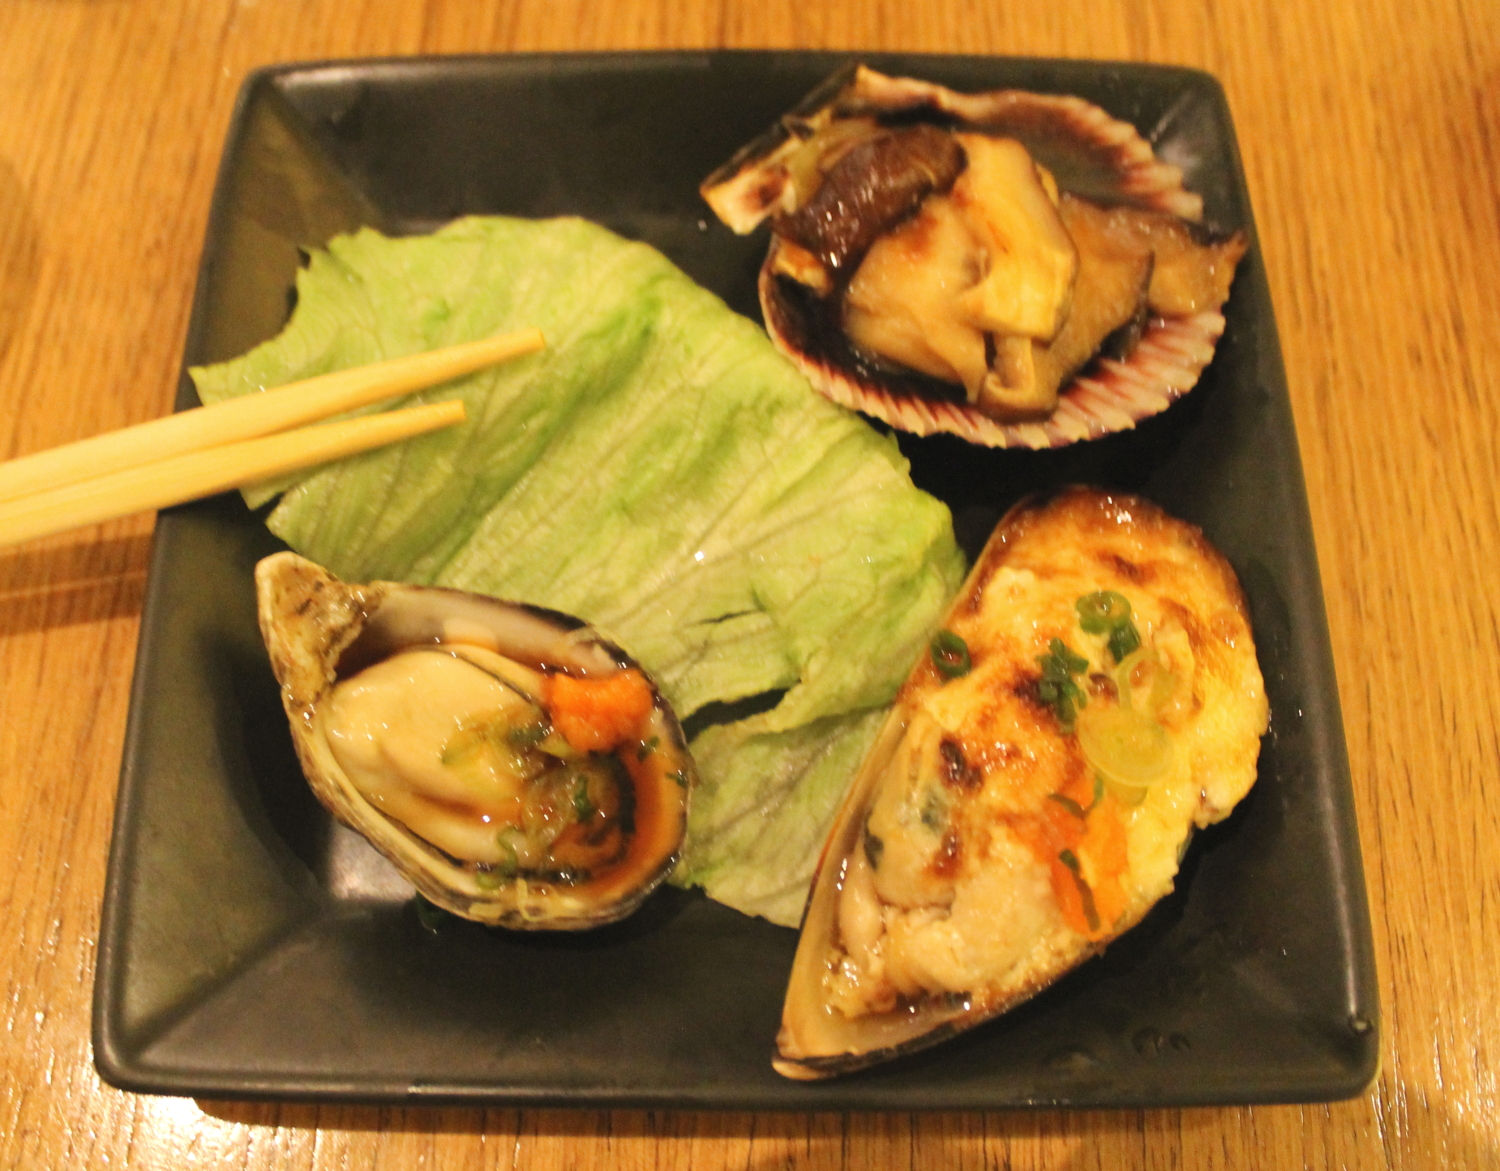 Mussels and Oyster Trio